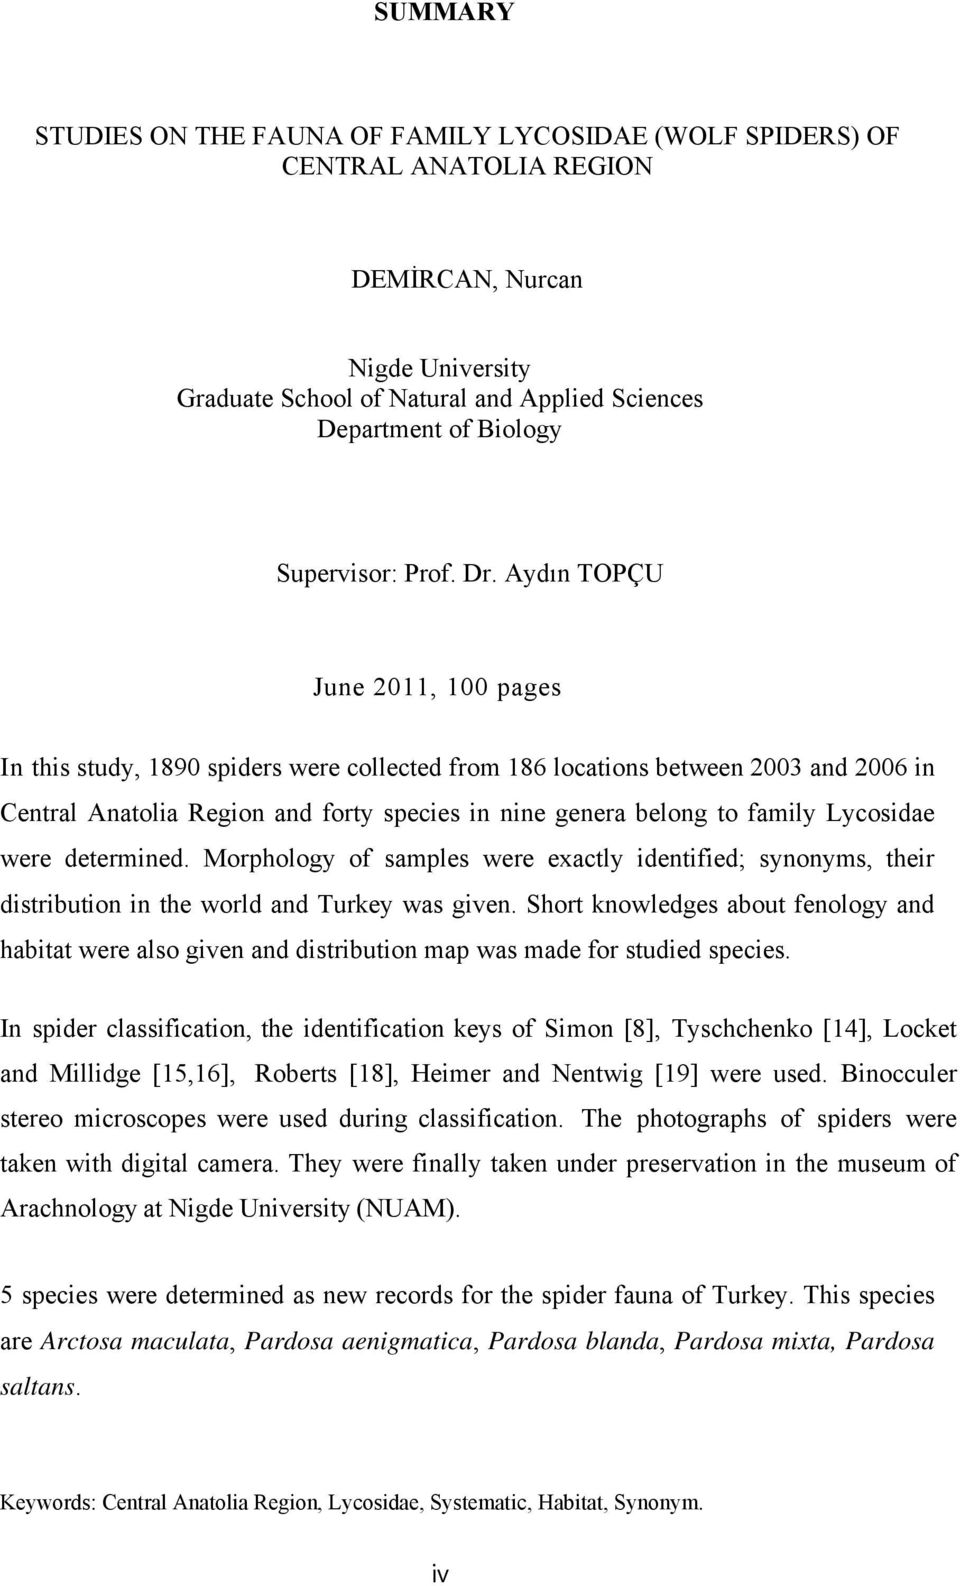 Aydın TOPÇU June 2011, 100 pages In this study, 1890 spiders were collected from 186 locations between 2003 and 2006 in Central Anatolia Region and forty species in nine genera belong to family